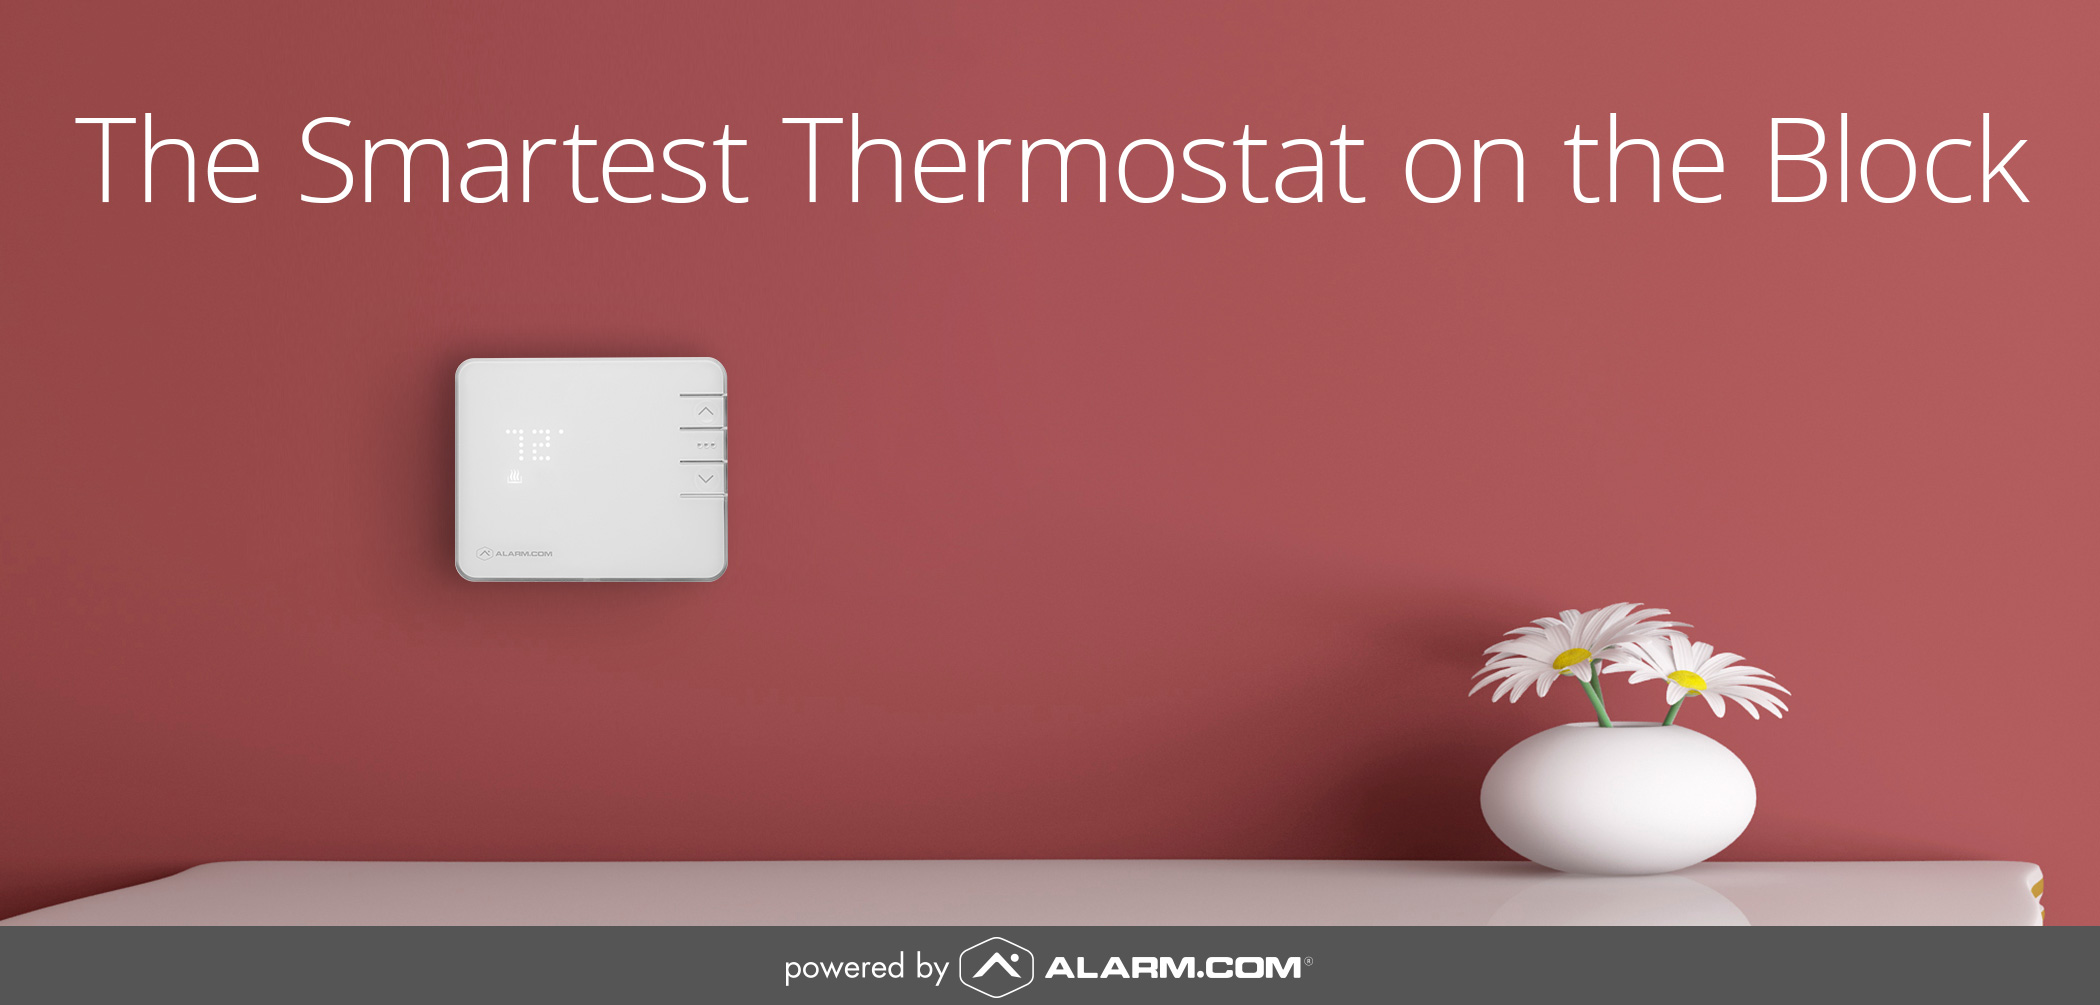 The Smartest Thermostat